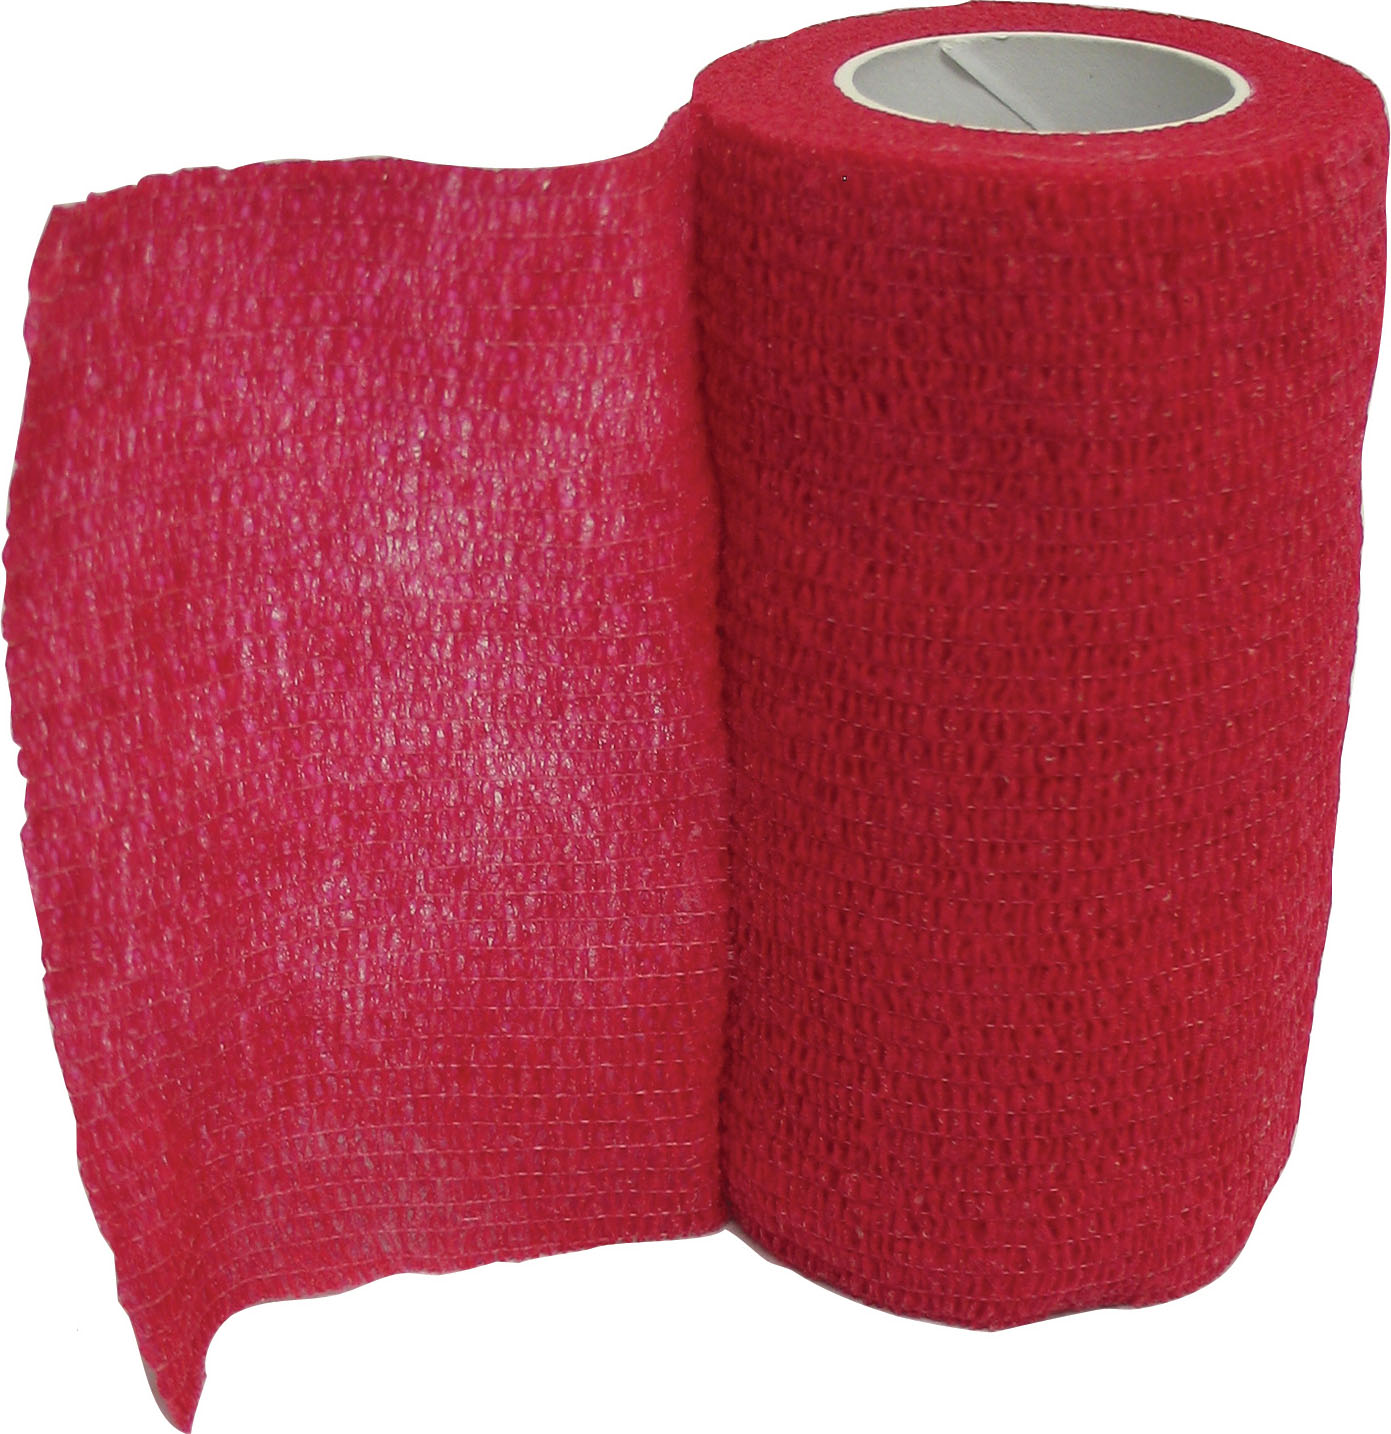 Animal Supplies Internat-Wrap-it-up Flexible Bandage- Red 4 In X 5 Ft